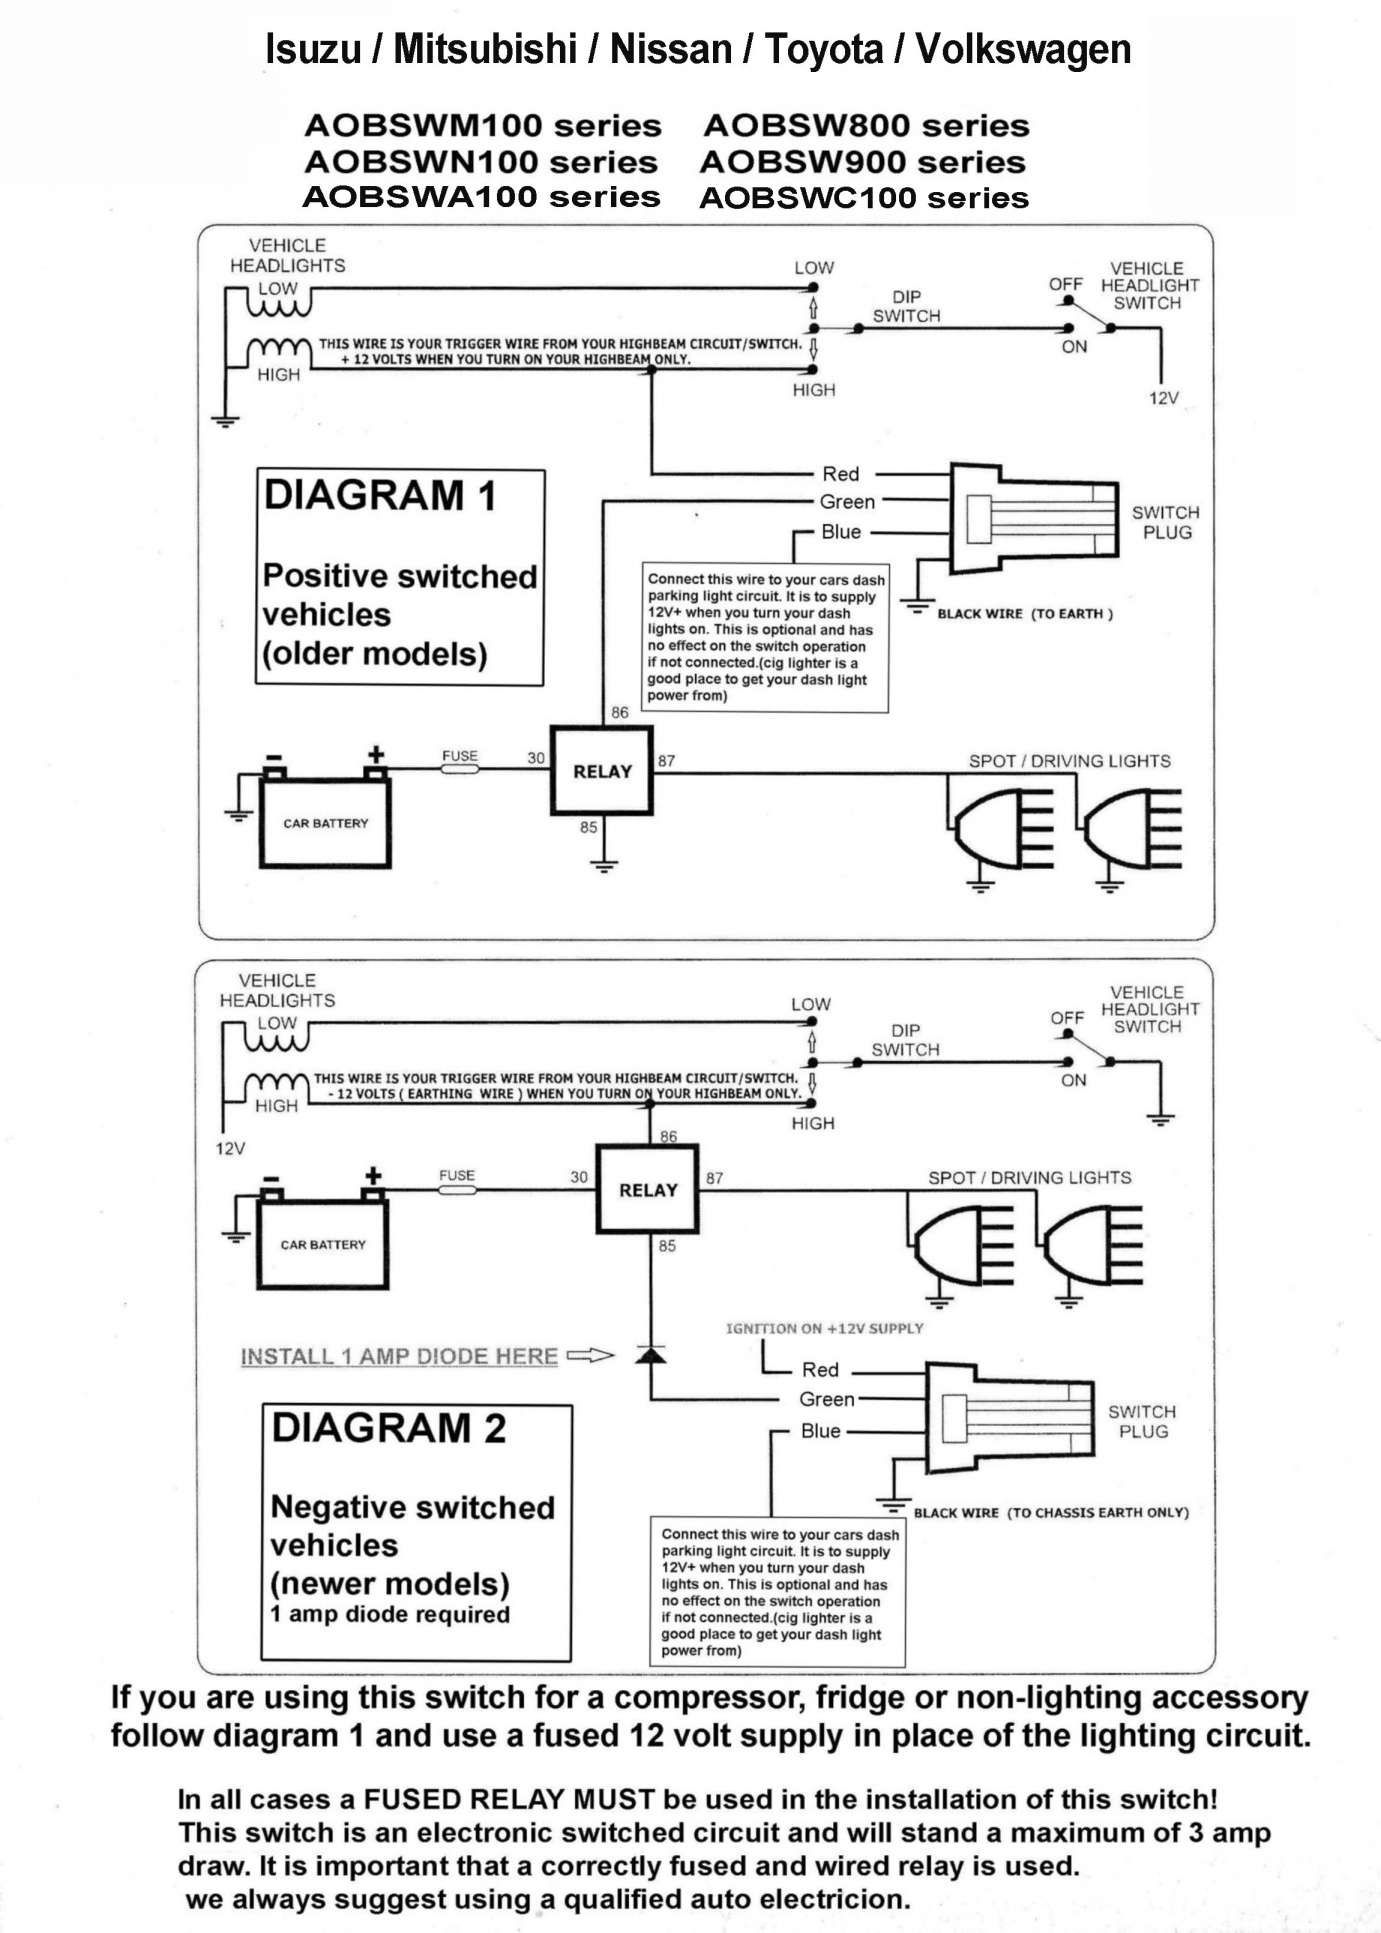 2004 Nissan Titan Radio Wiring Diagram - Wiring Diagram